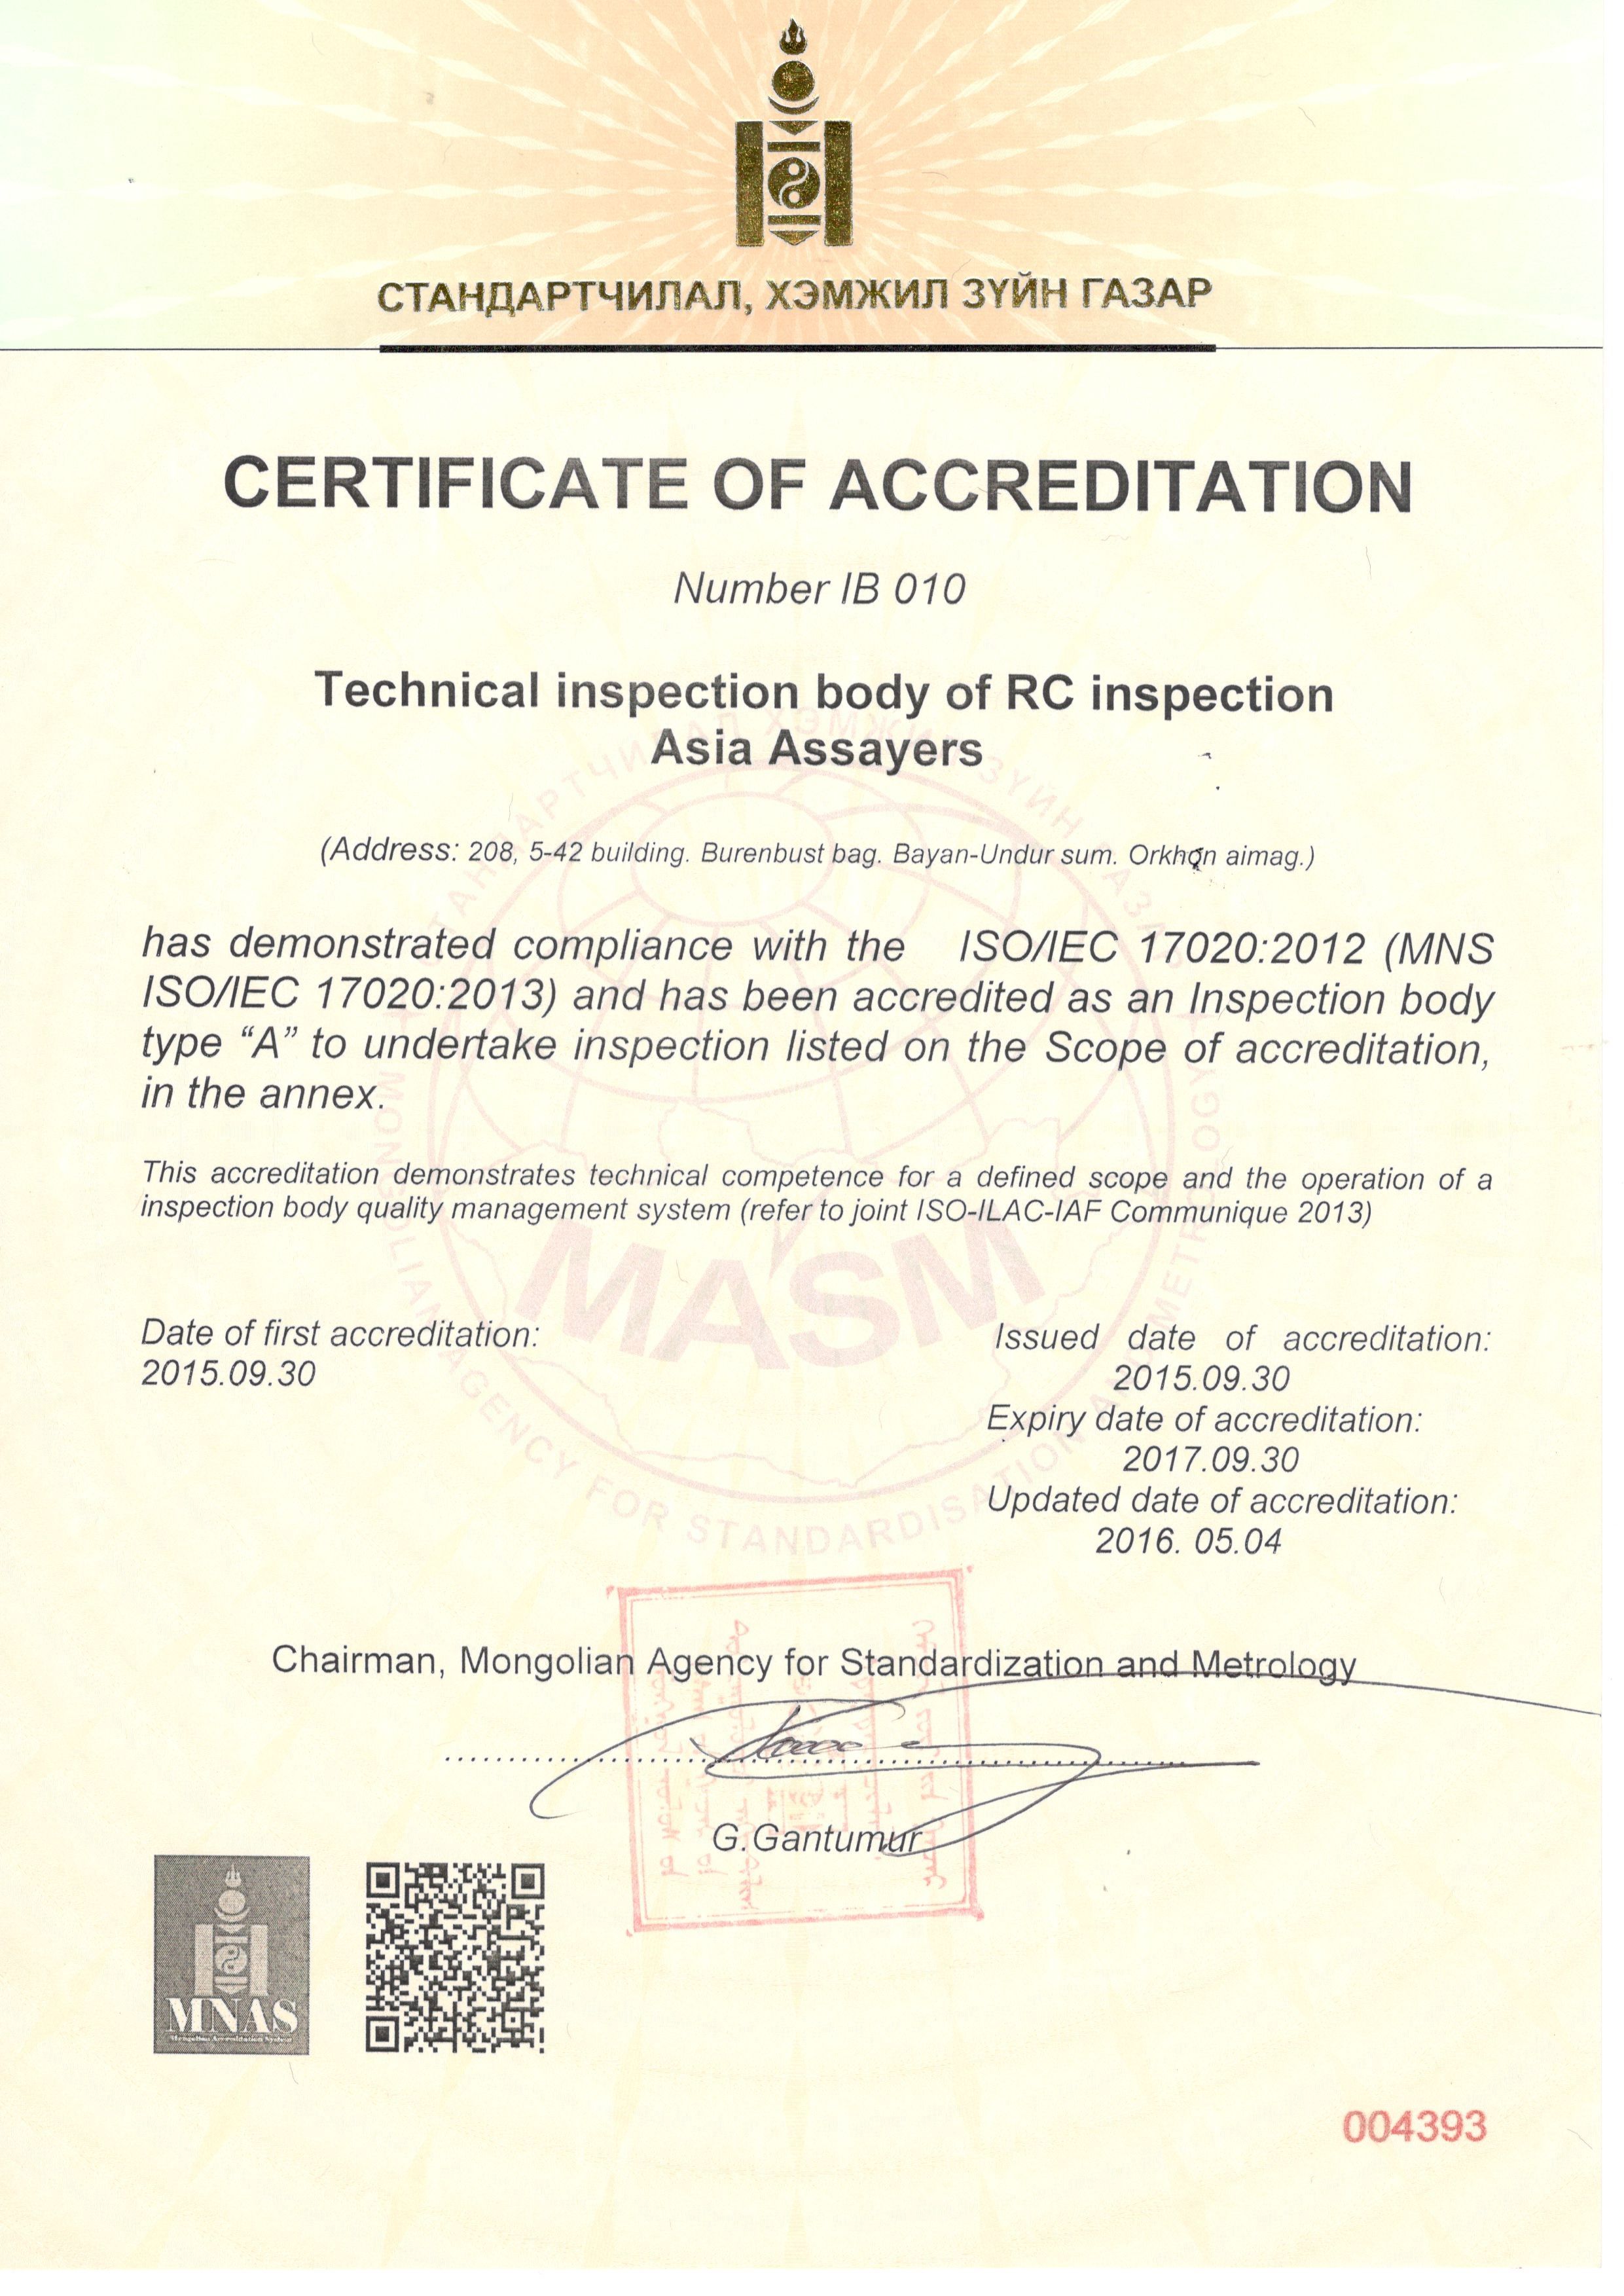 Iso 17020 Certificate Rci Asia Assayers Llc Rc Inspection Group